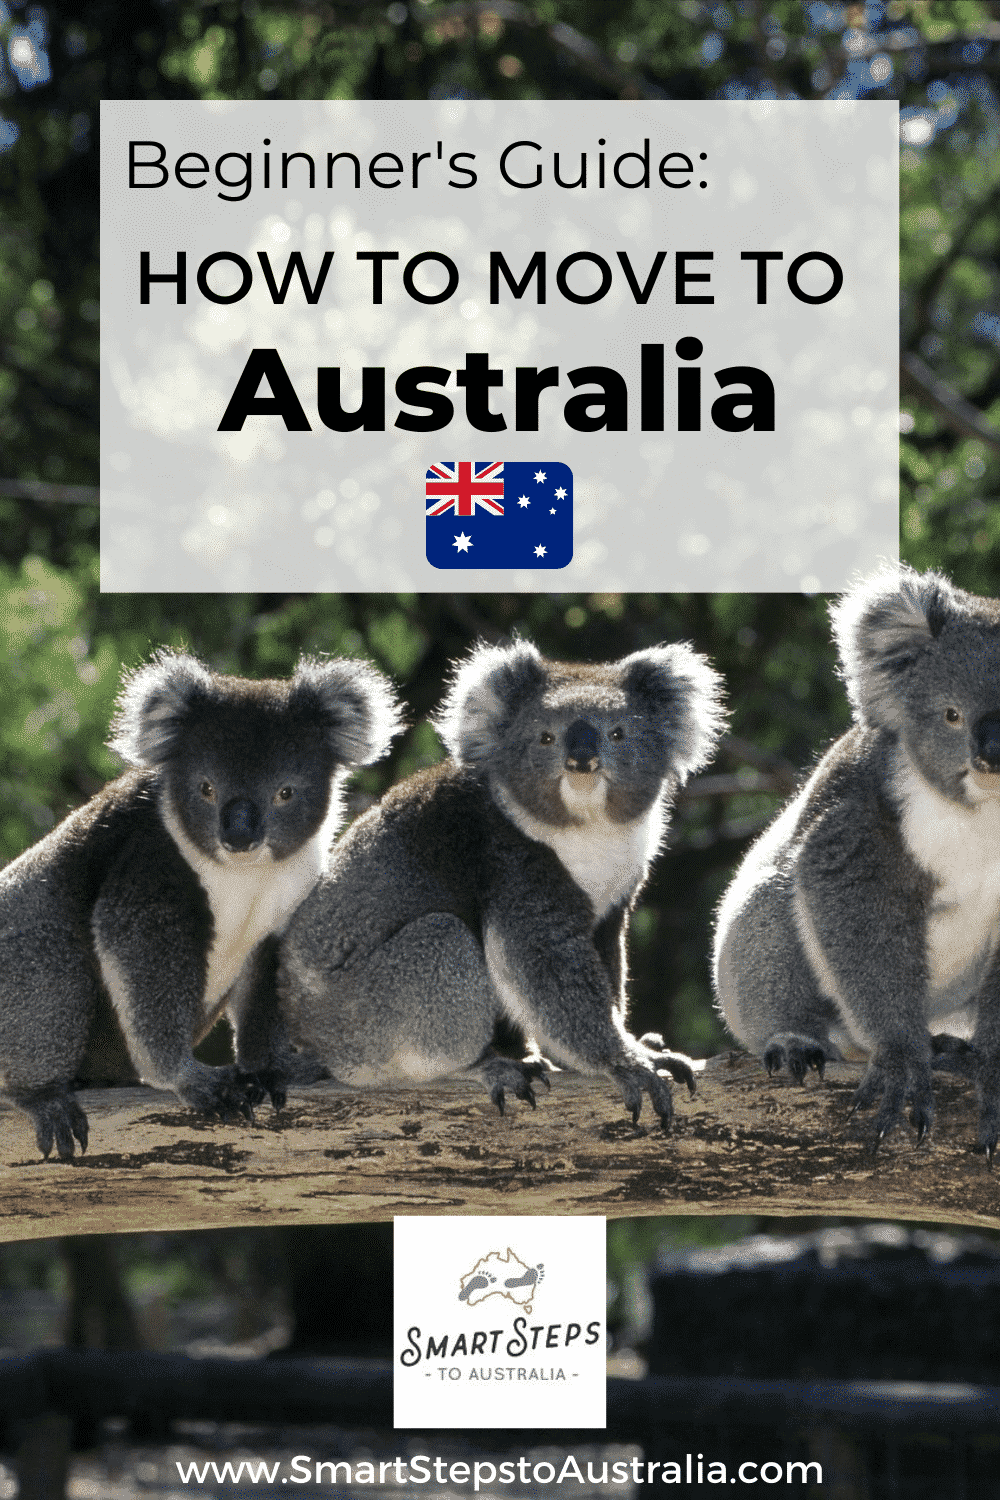 Pinterest image for a Beginner's Guide: How to move to Australia with koalas on it